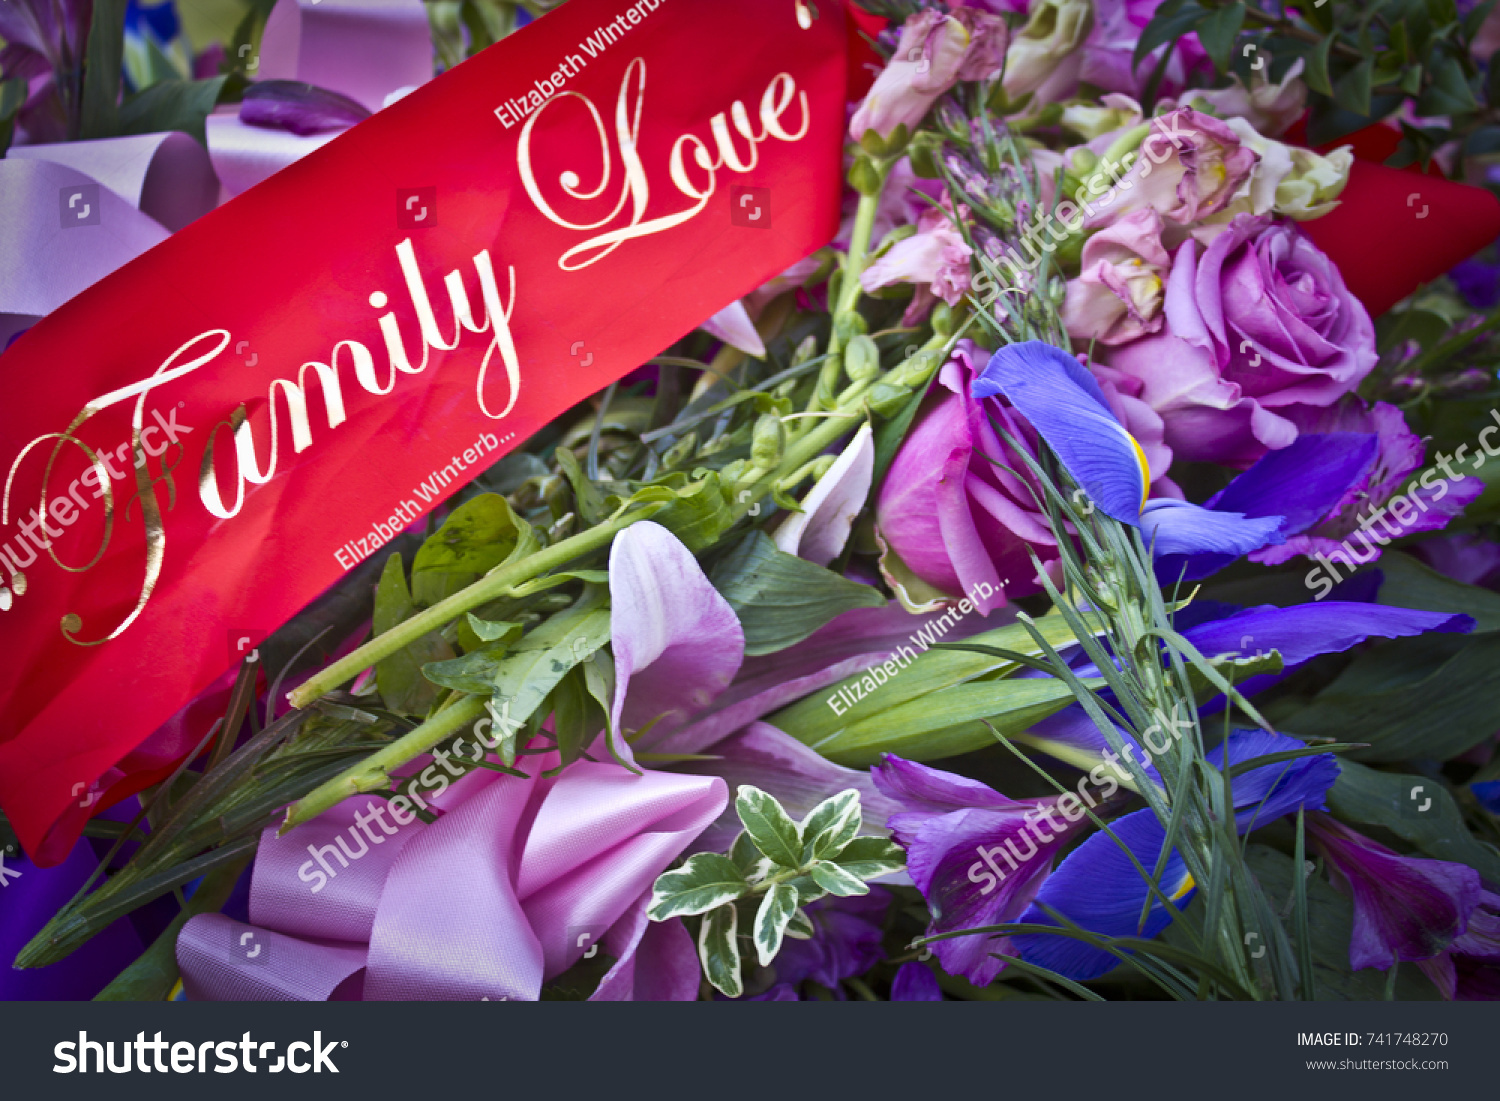 Funeral flowers red family love banner stock photo royalty free funeral flowers with red family love banner izmirmasajfo